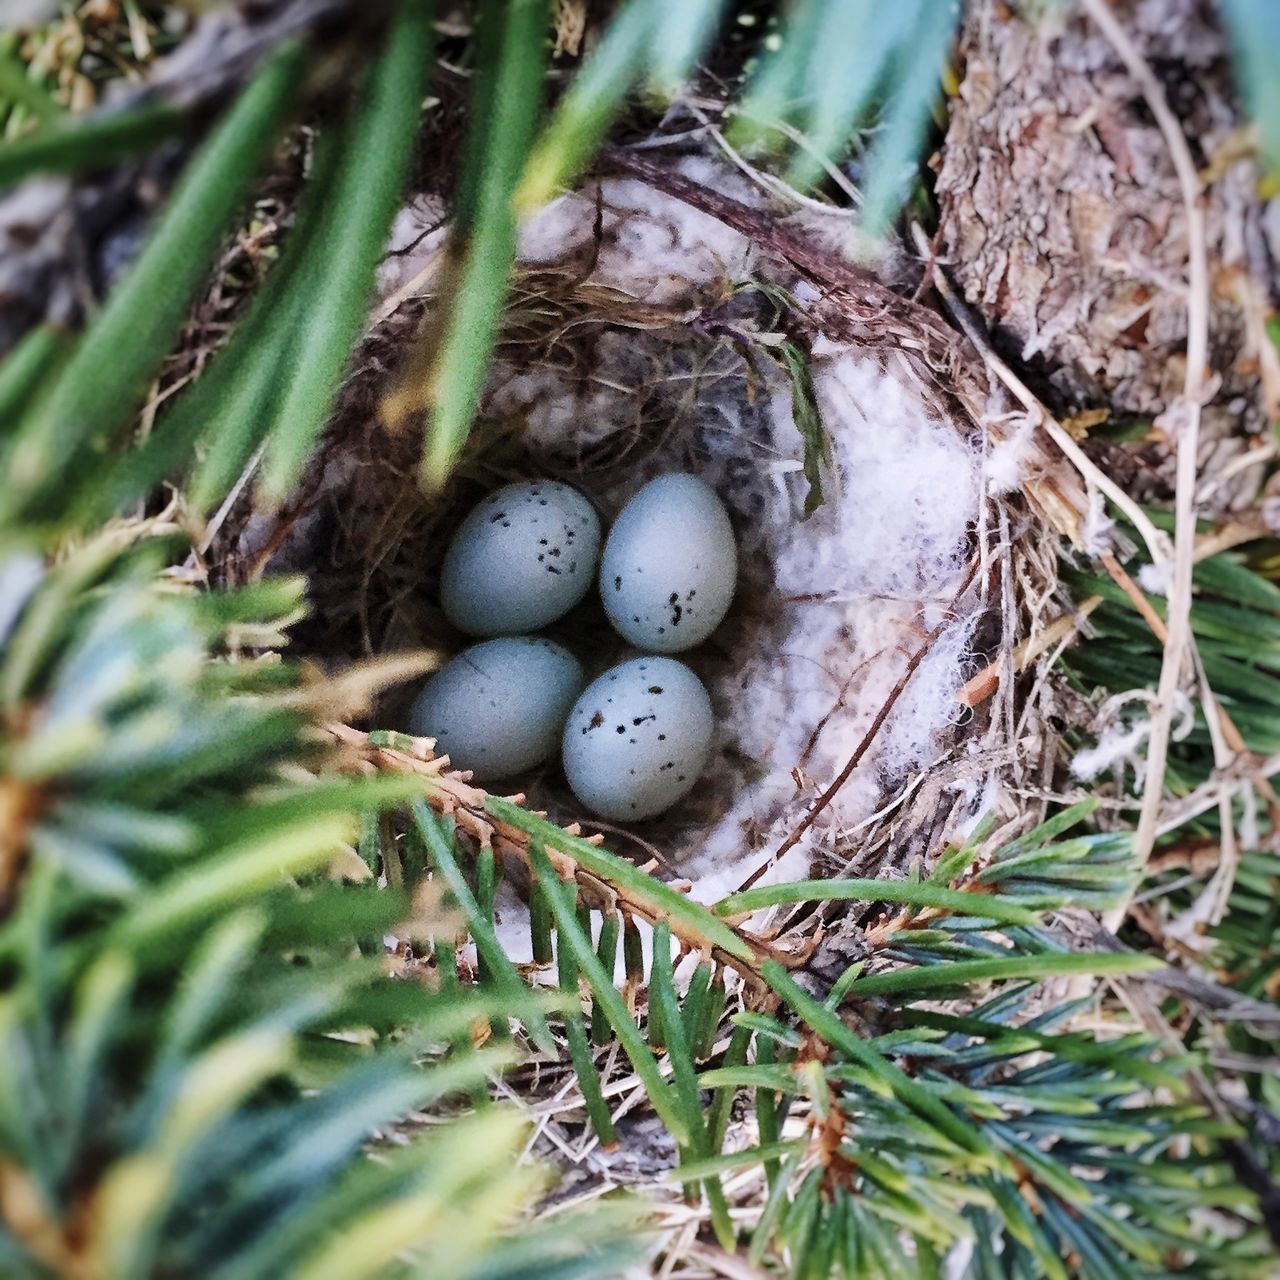 New neighbors in our parts. Birdsnest Nature Eggs